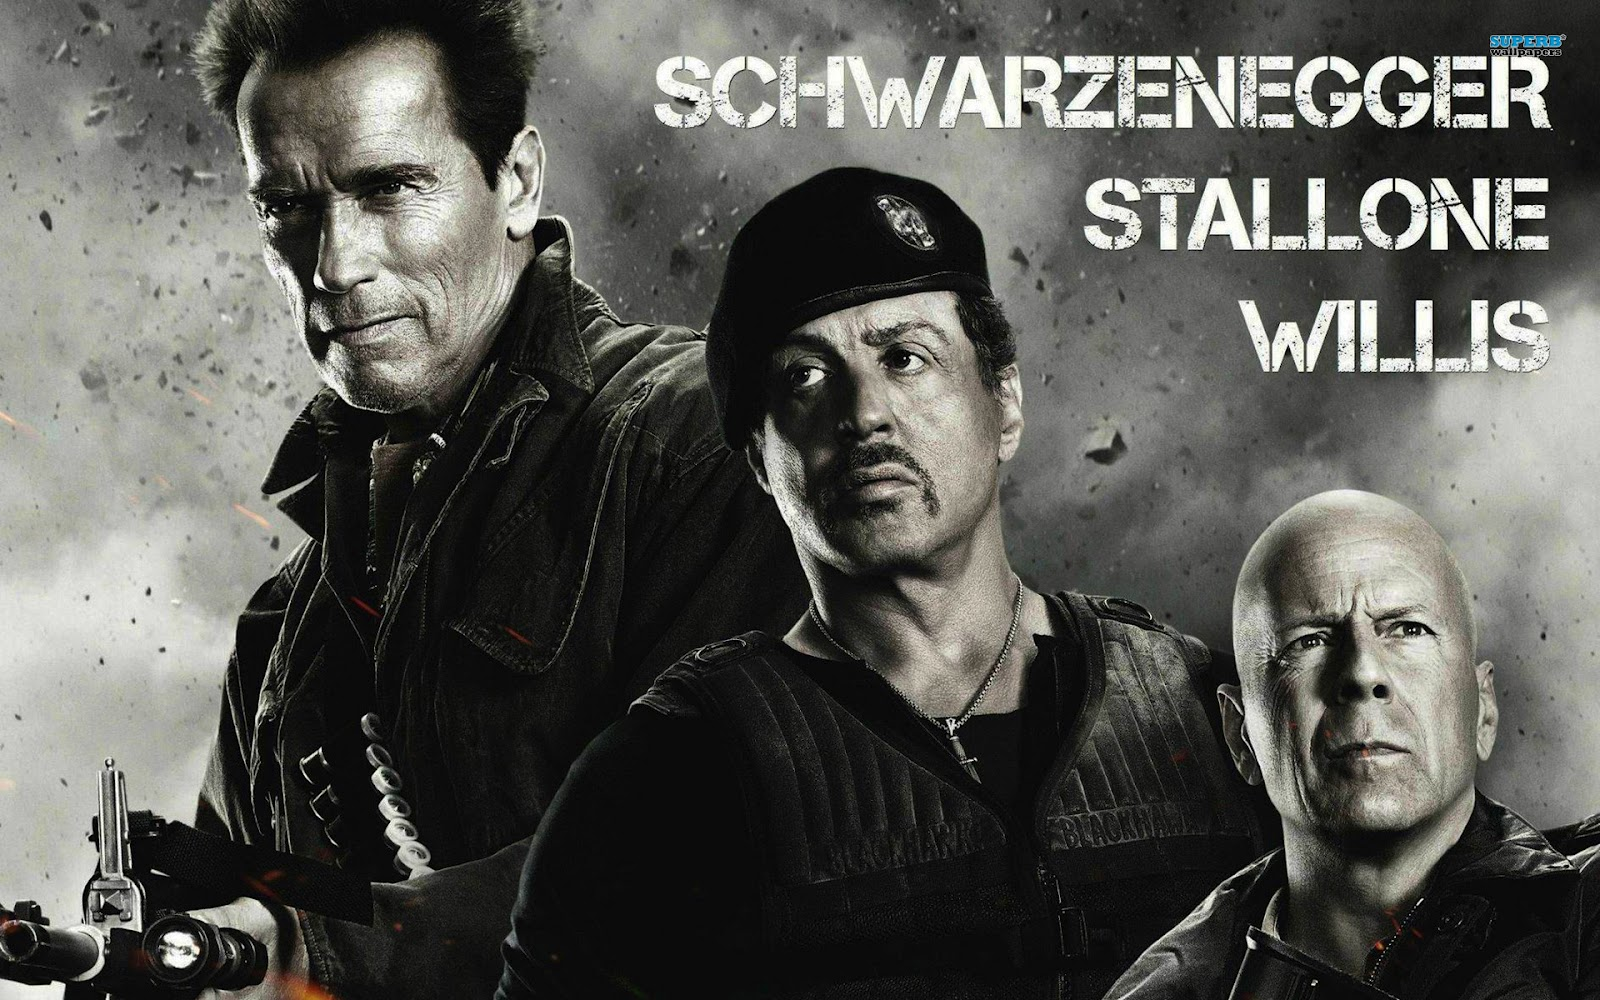 Sylvester Stallone In Expendables 2 Wallpapers: Wallpapers HD: Los Mercenarios 2 (24)Wallpapers HD The